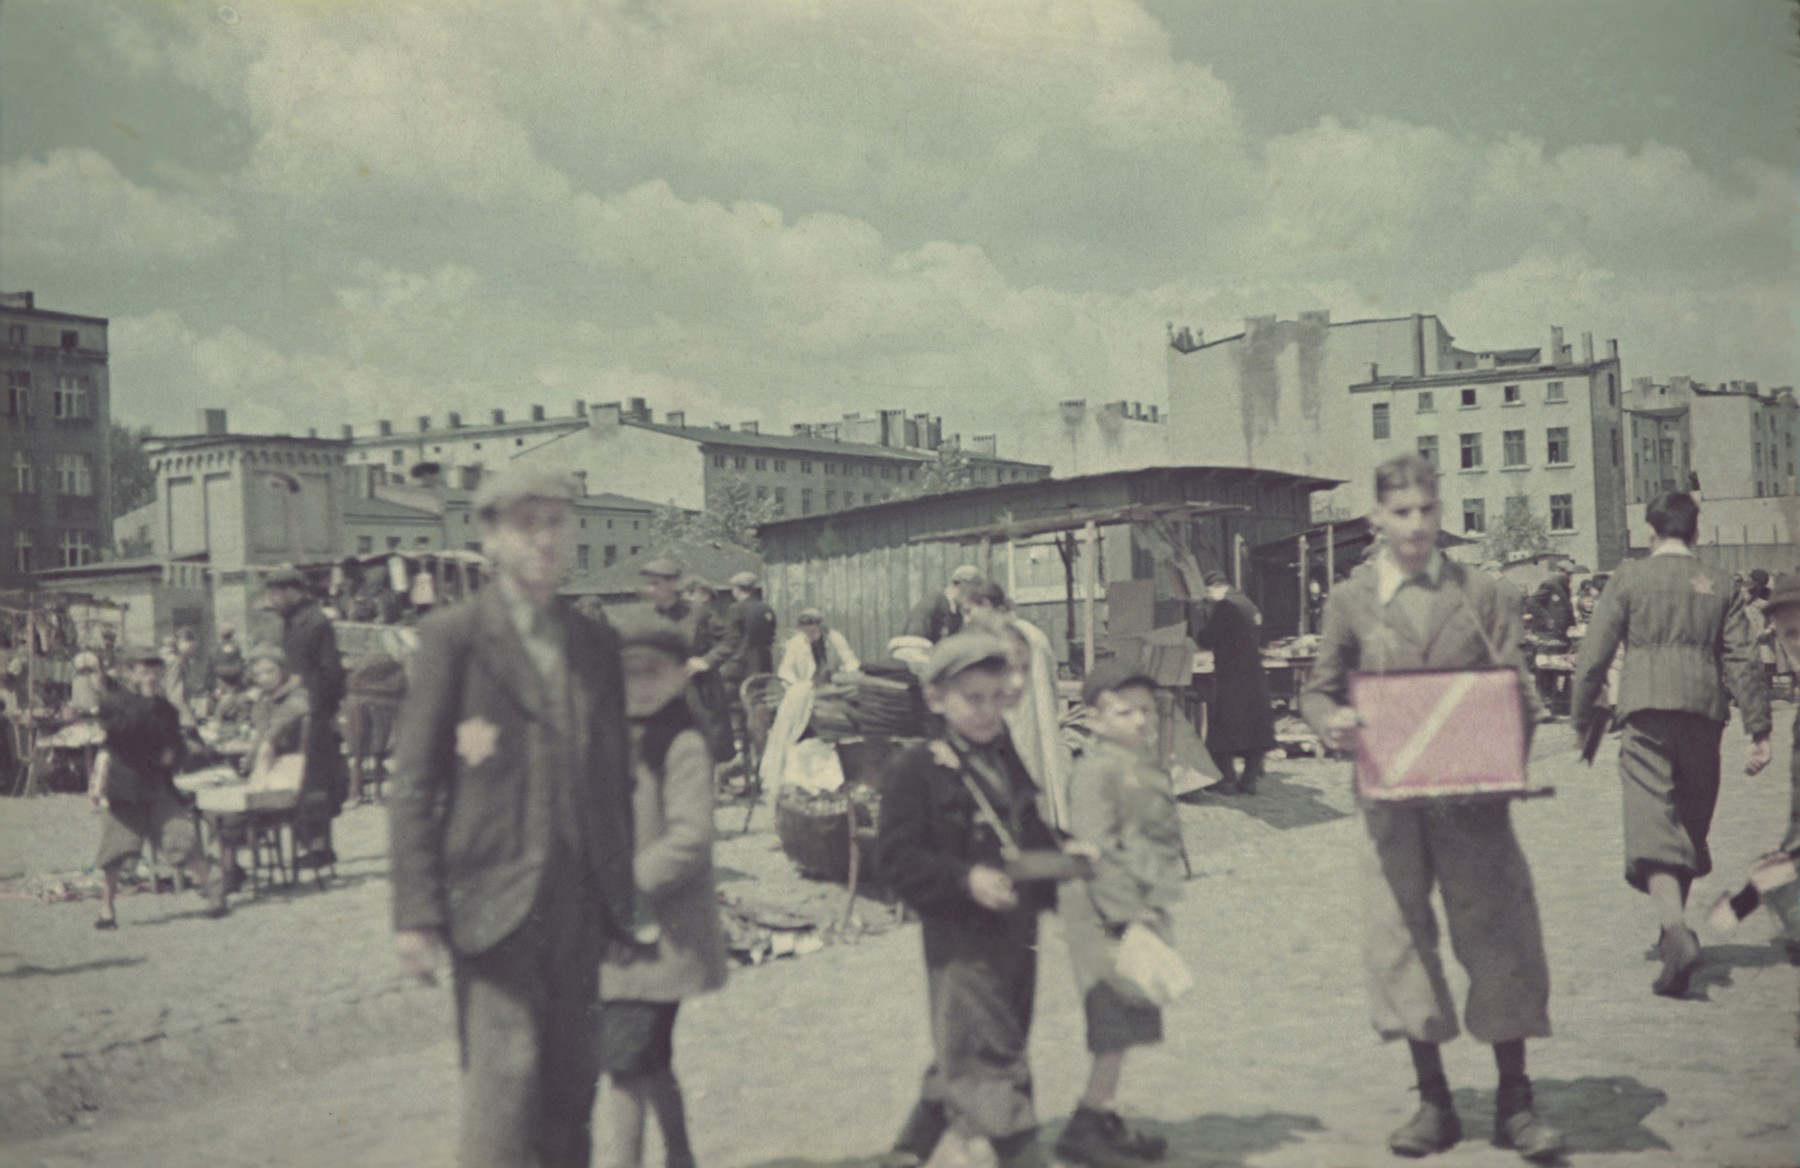 Residents bring their goods to an open-air market in the Lodz ghetto.